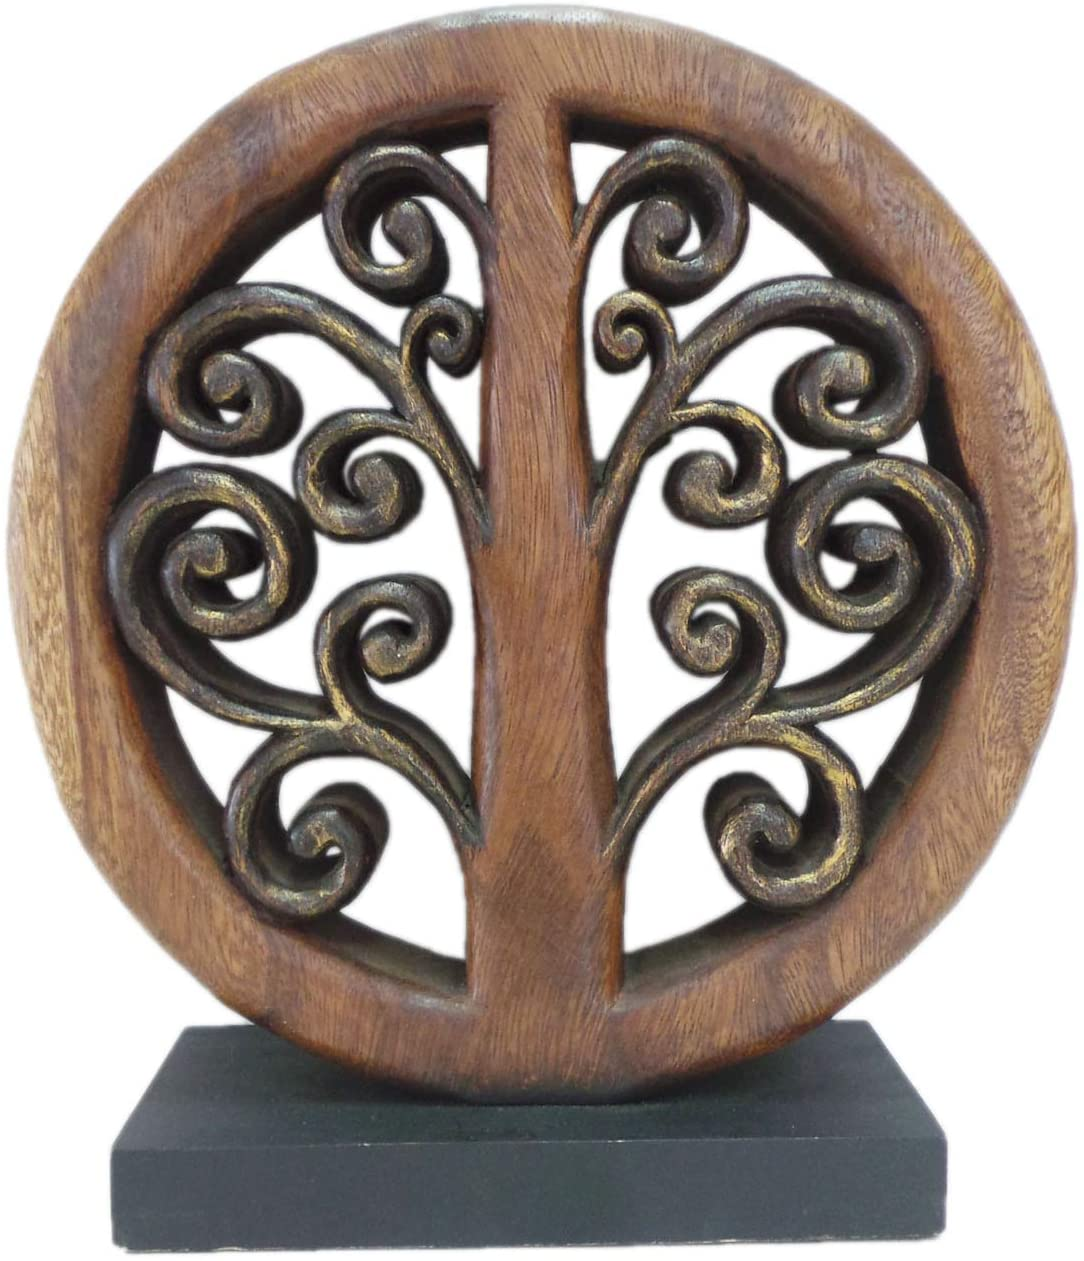 Decozen Handmade Wooden Tree of Life Décor a Symbol of Growth and Strength Made by Skilled Artisans for Farm House Home Decor Living Rooms Bedroom Kitchen Console Table 4x11x12 in